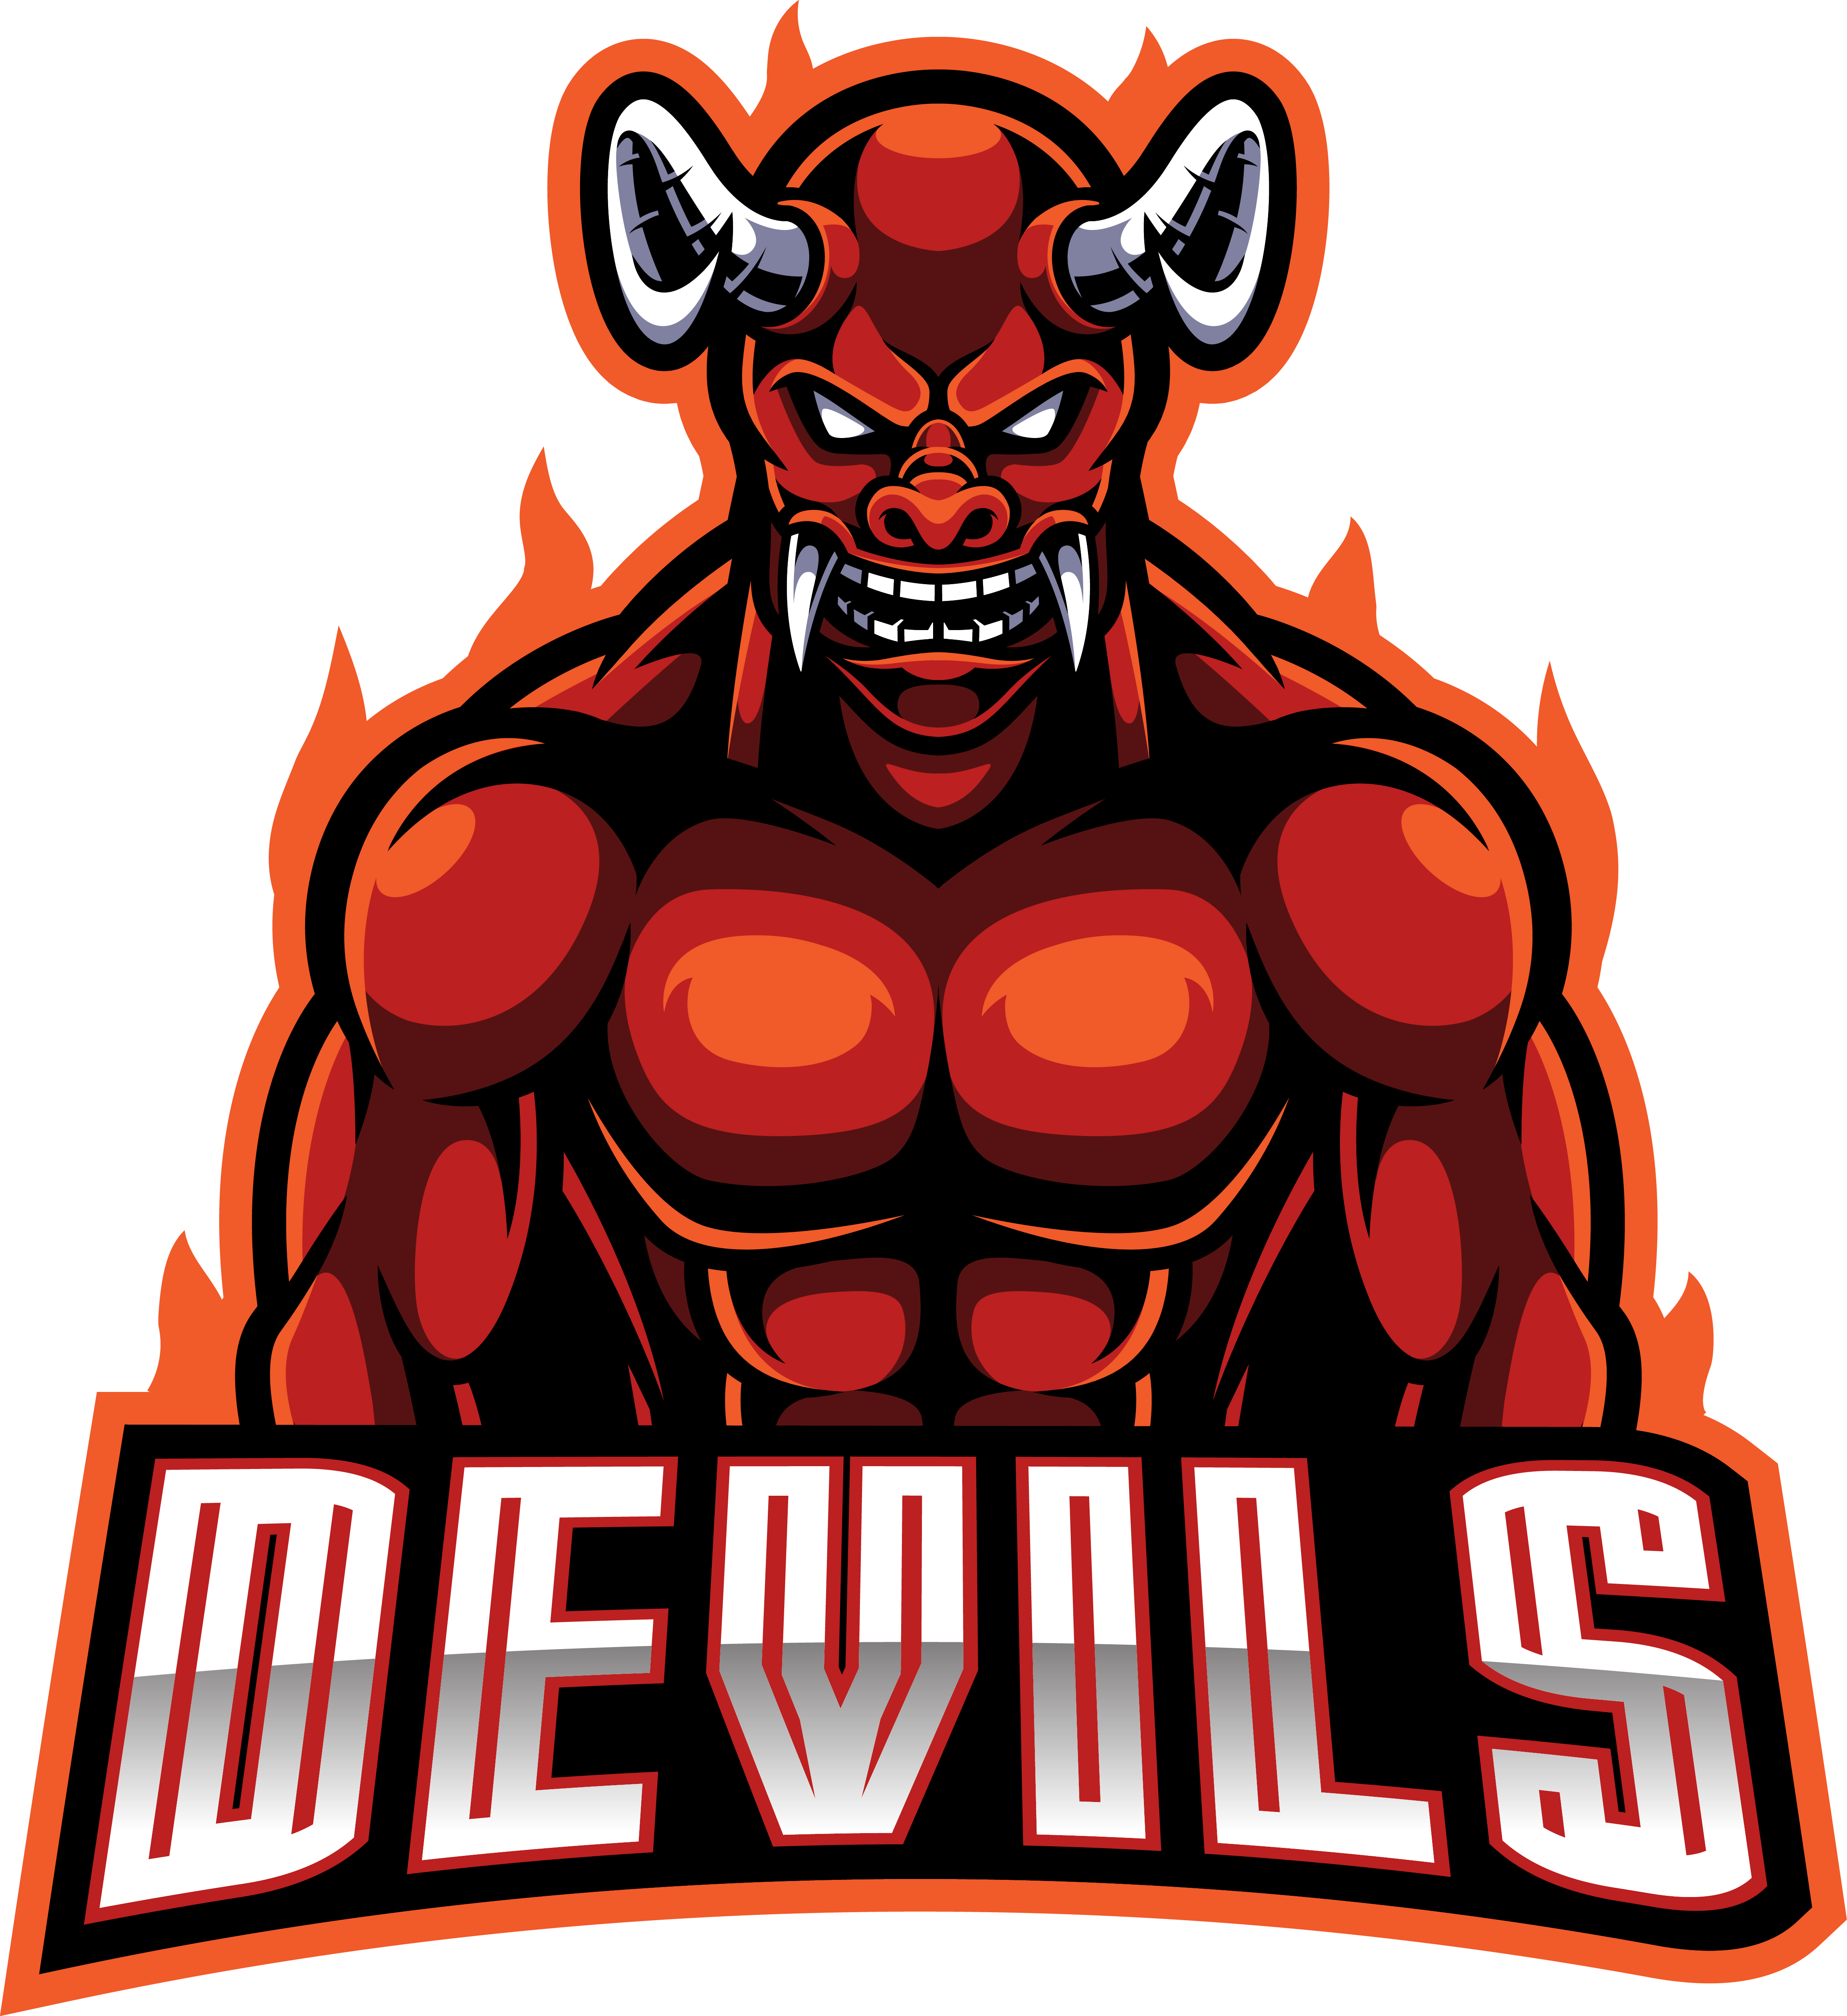 red devil esport mascot logo design by visink thehungryjpeg com the hungry jpeg